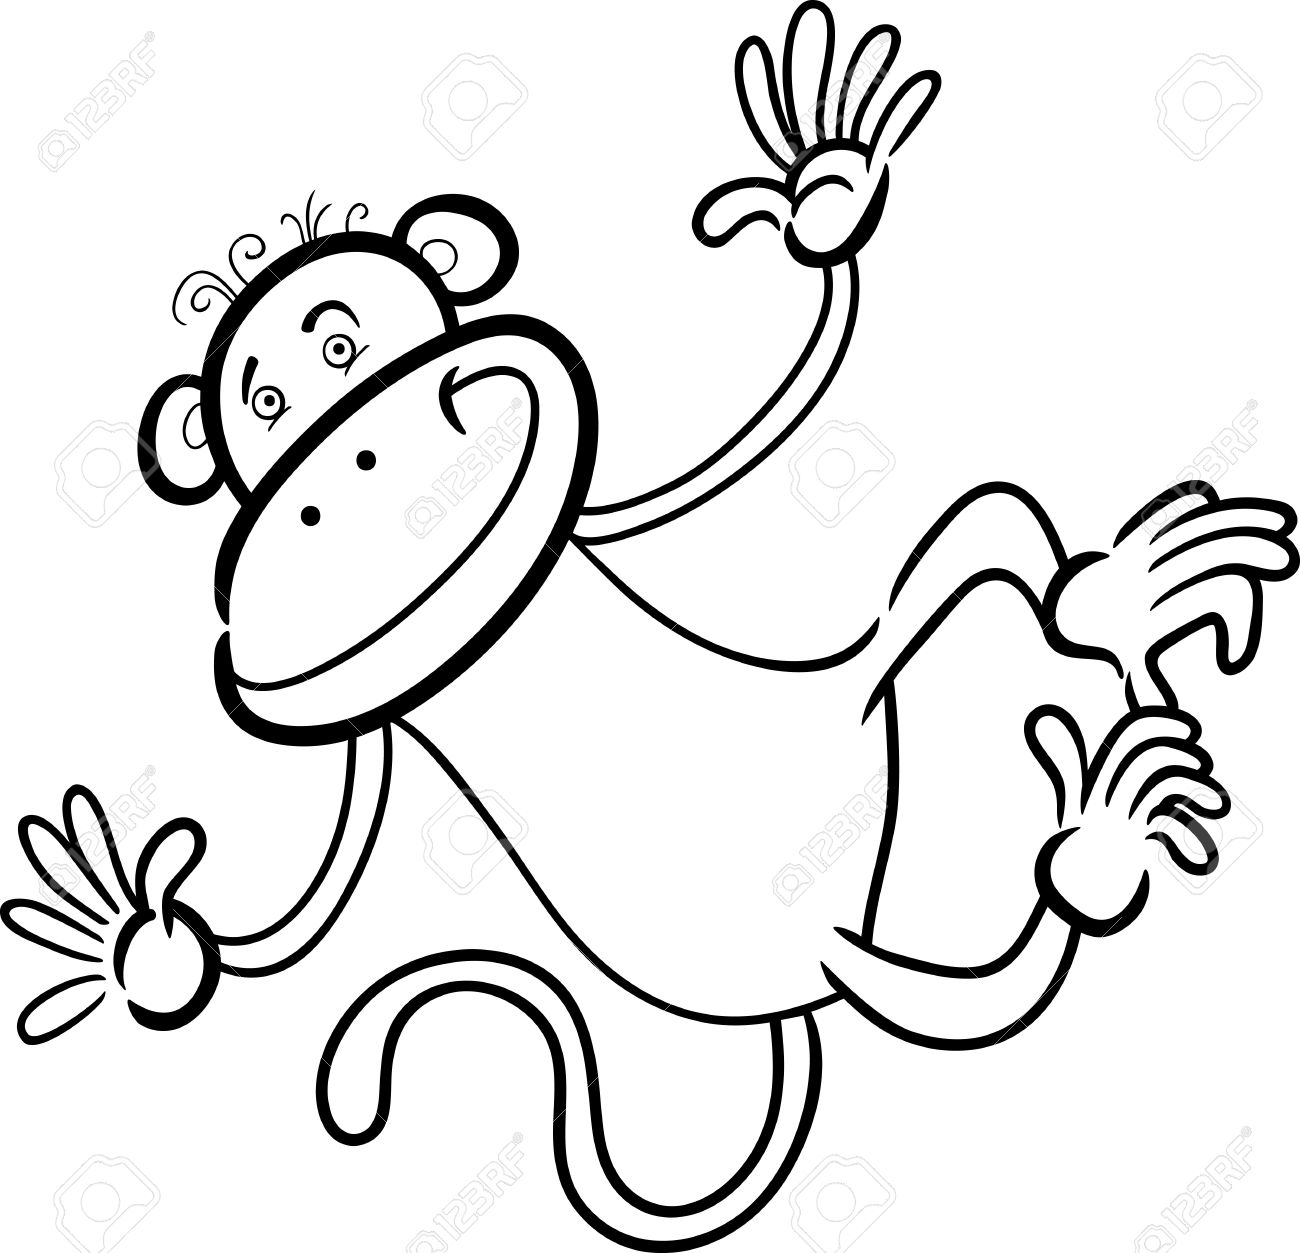 Cartoon Drawing Of Monkey at GetDrawings.com | Free for personal use ...